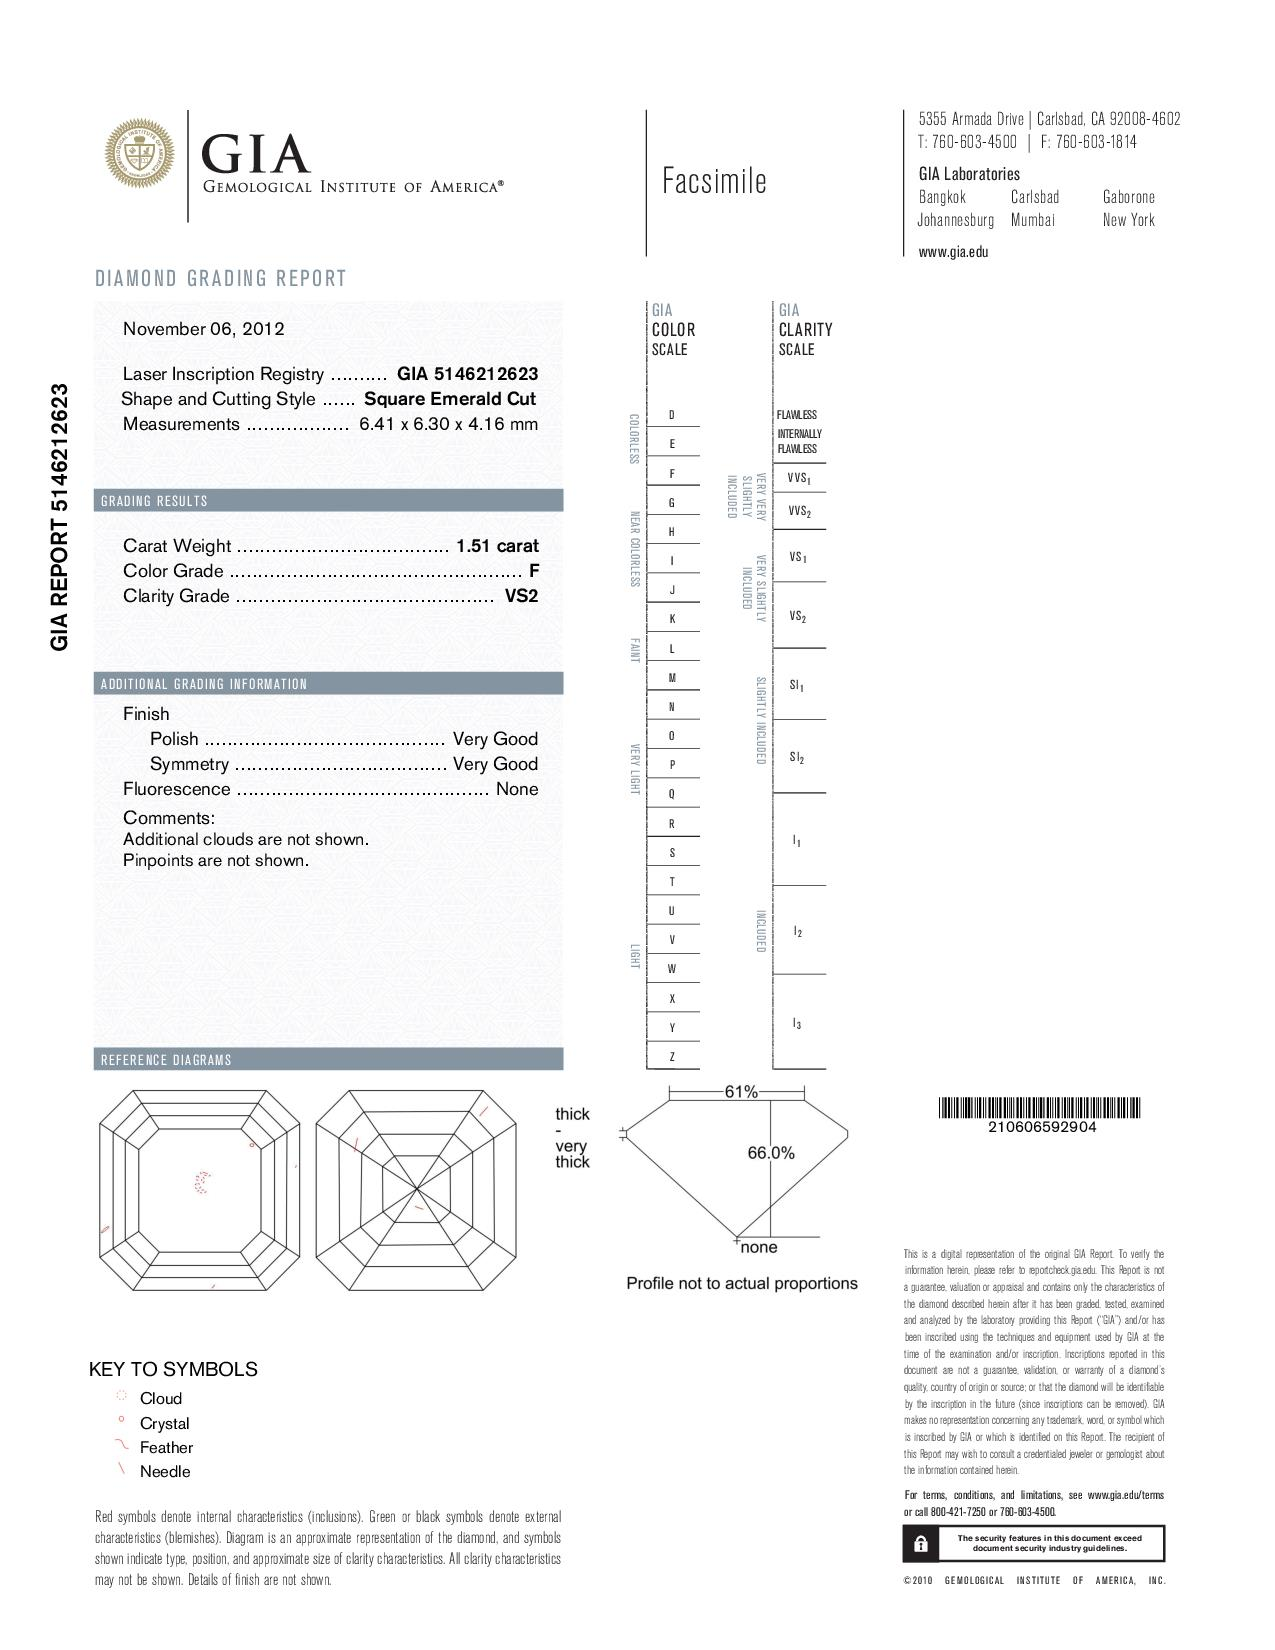 This is a 1.51 carat asscher shape, F color, VS2 clarity natural diamond accompanied by a GIA grading report.